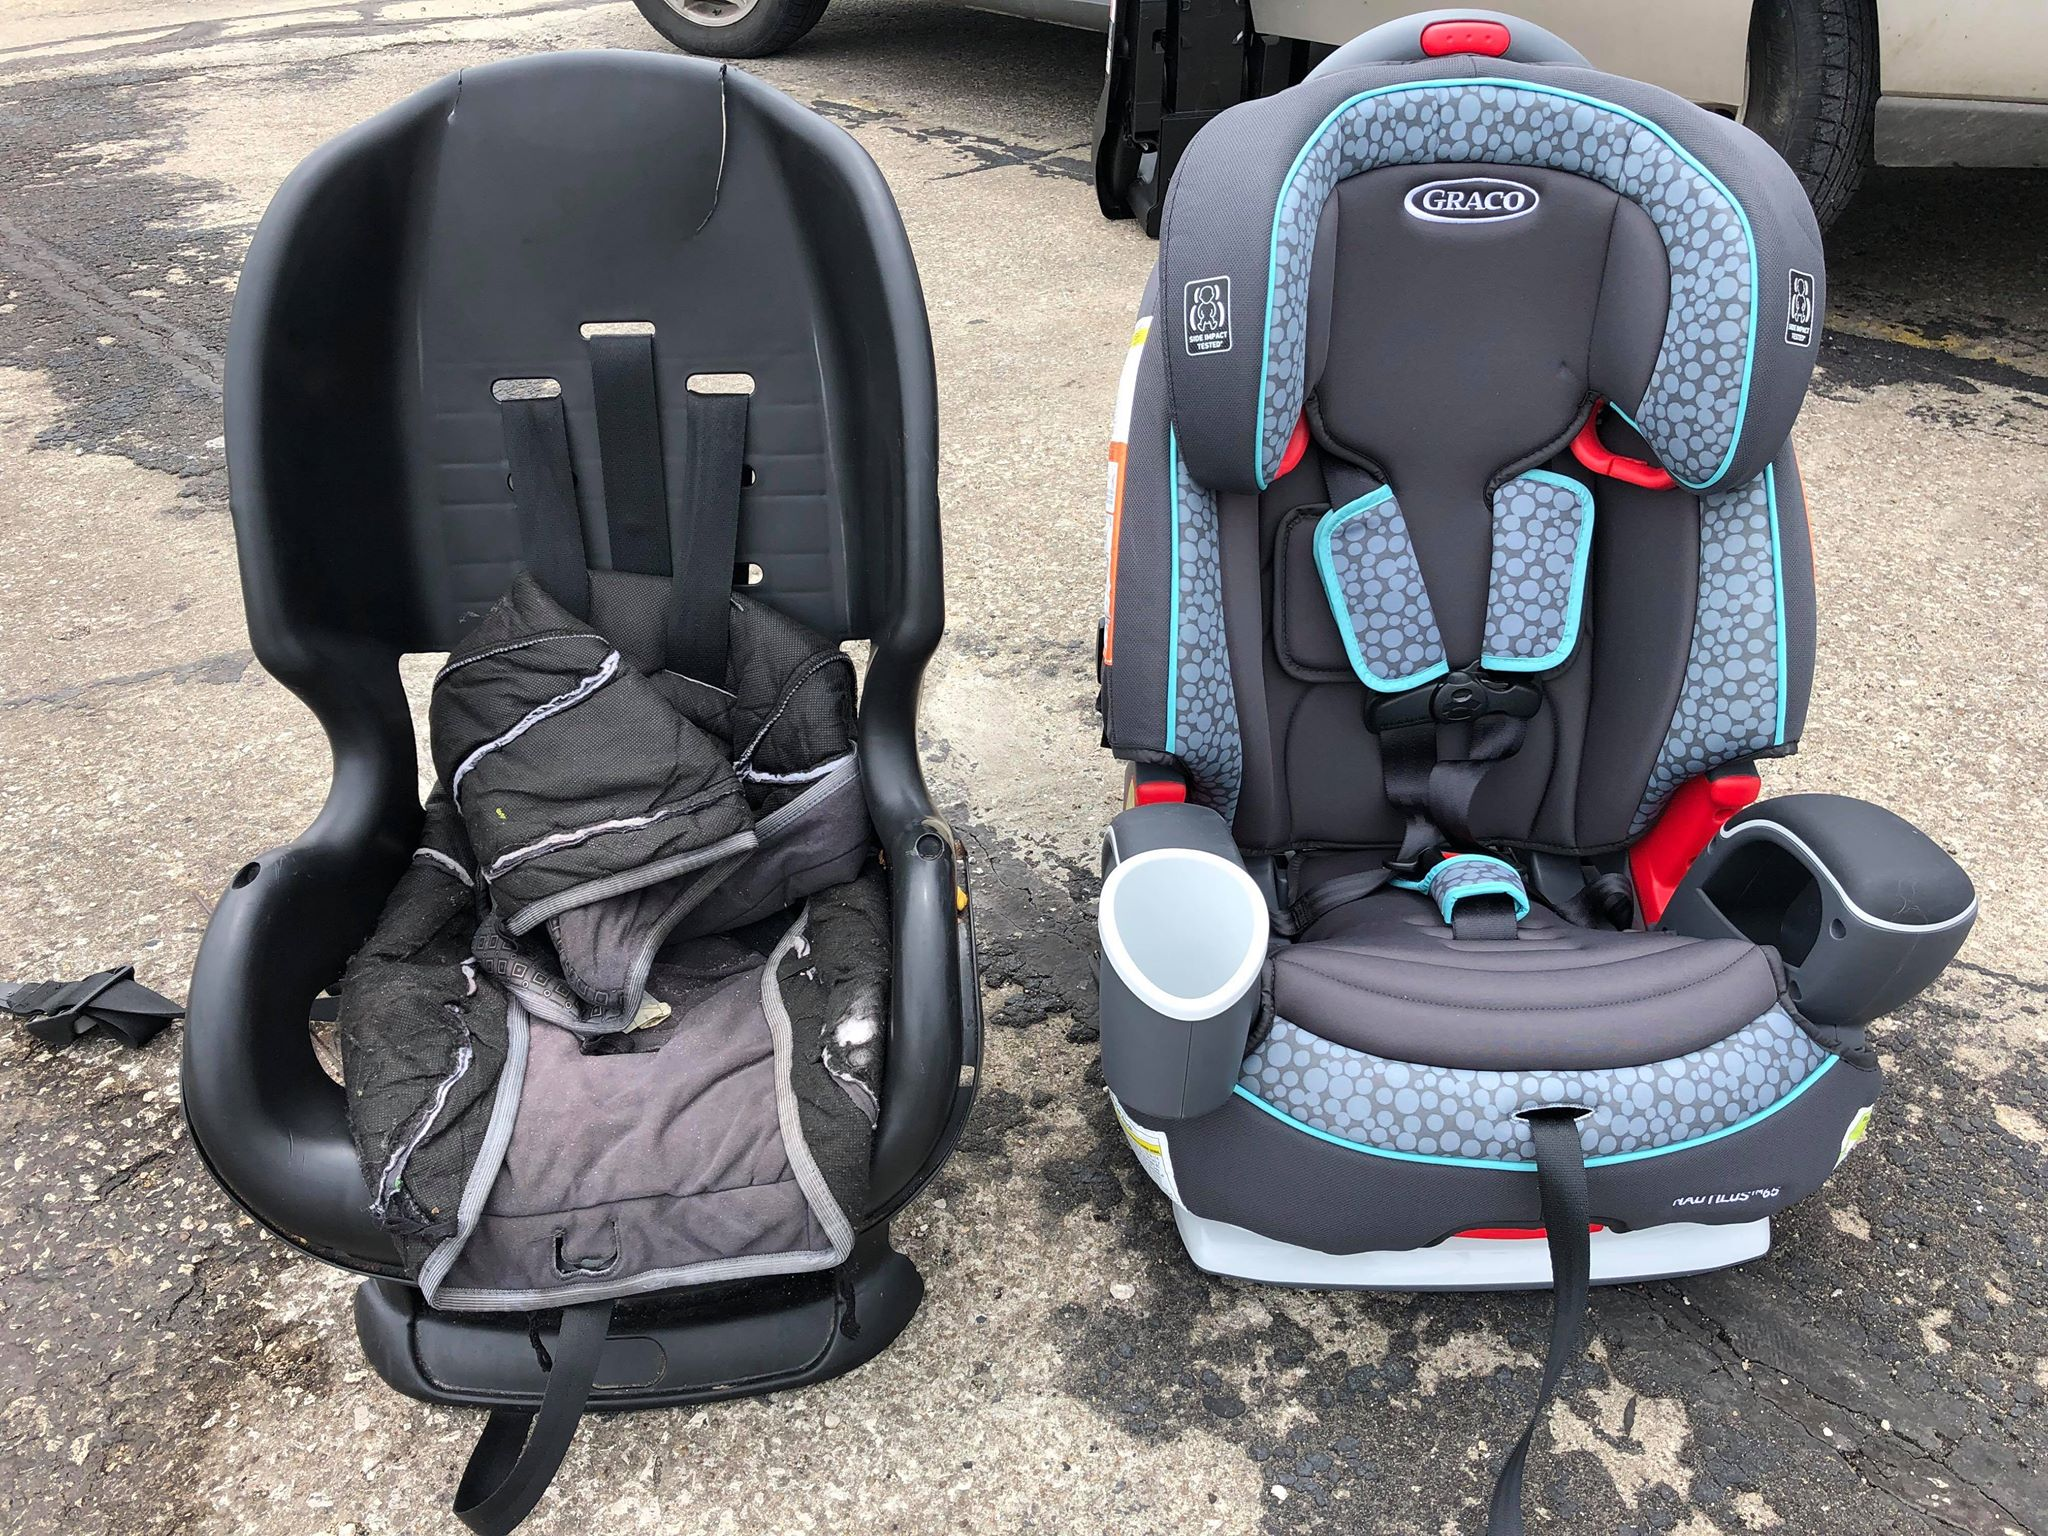 Out with the old, in with the new! Above is one of many car seats replaced and installed at the event.